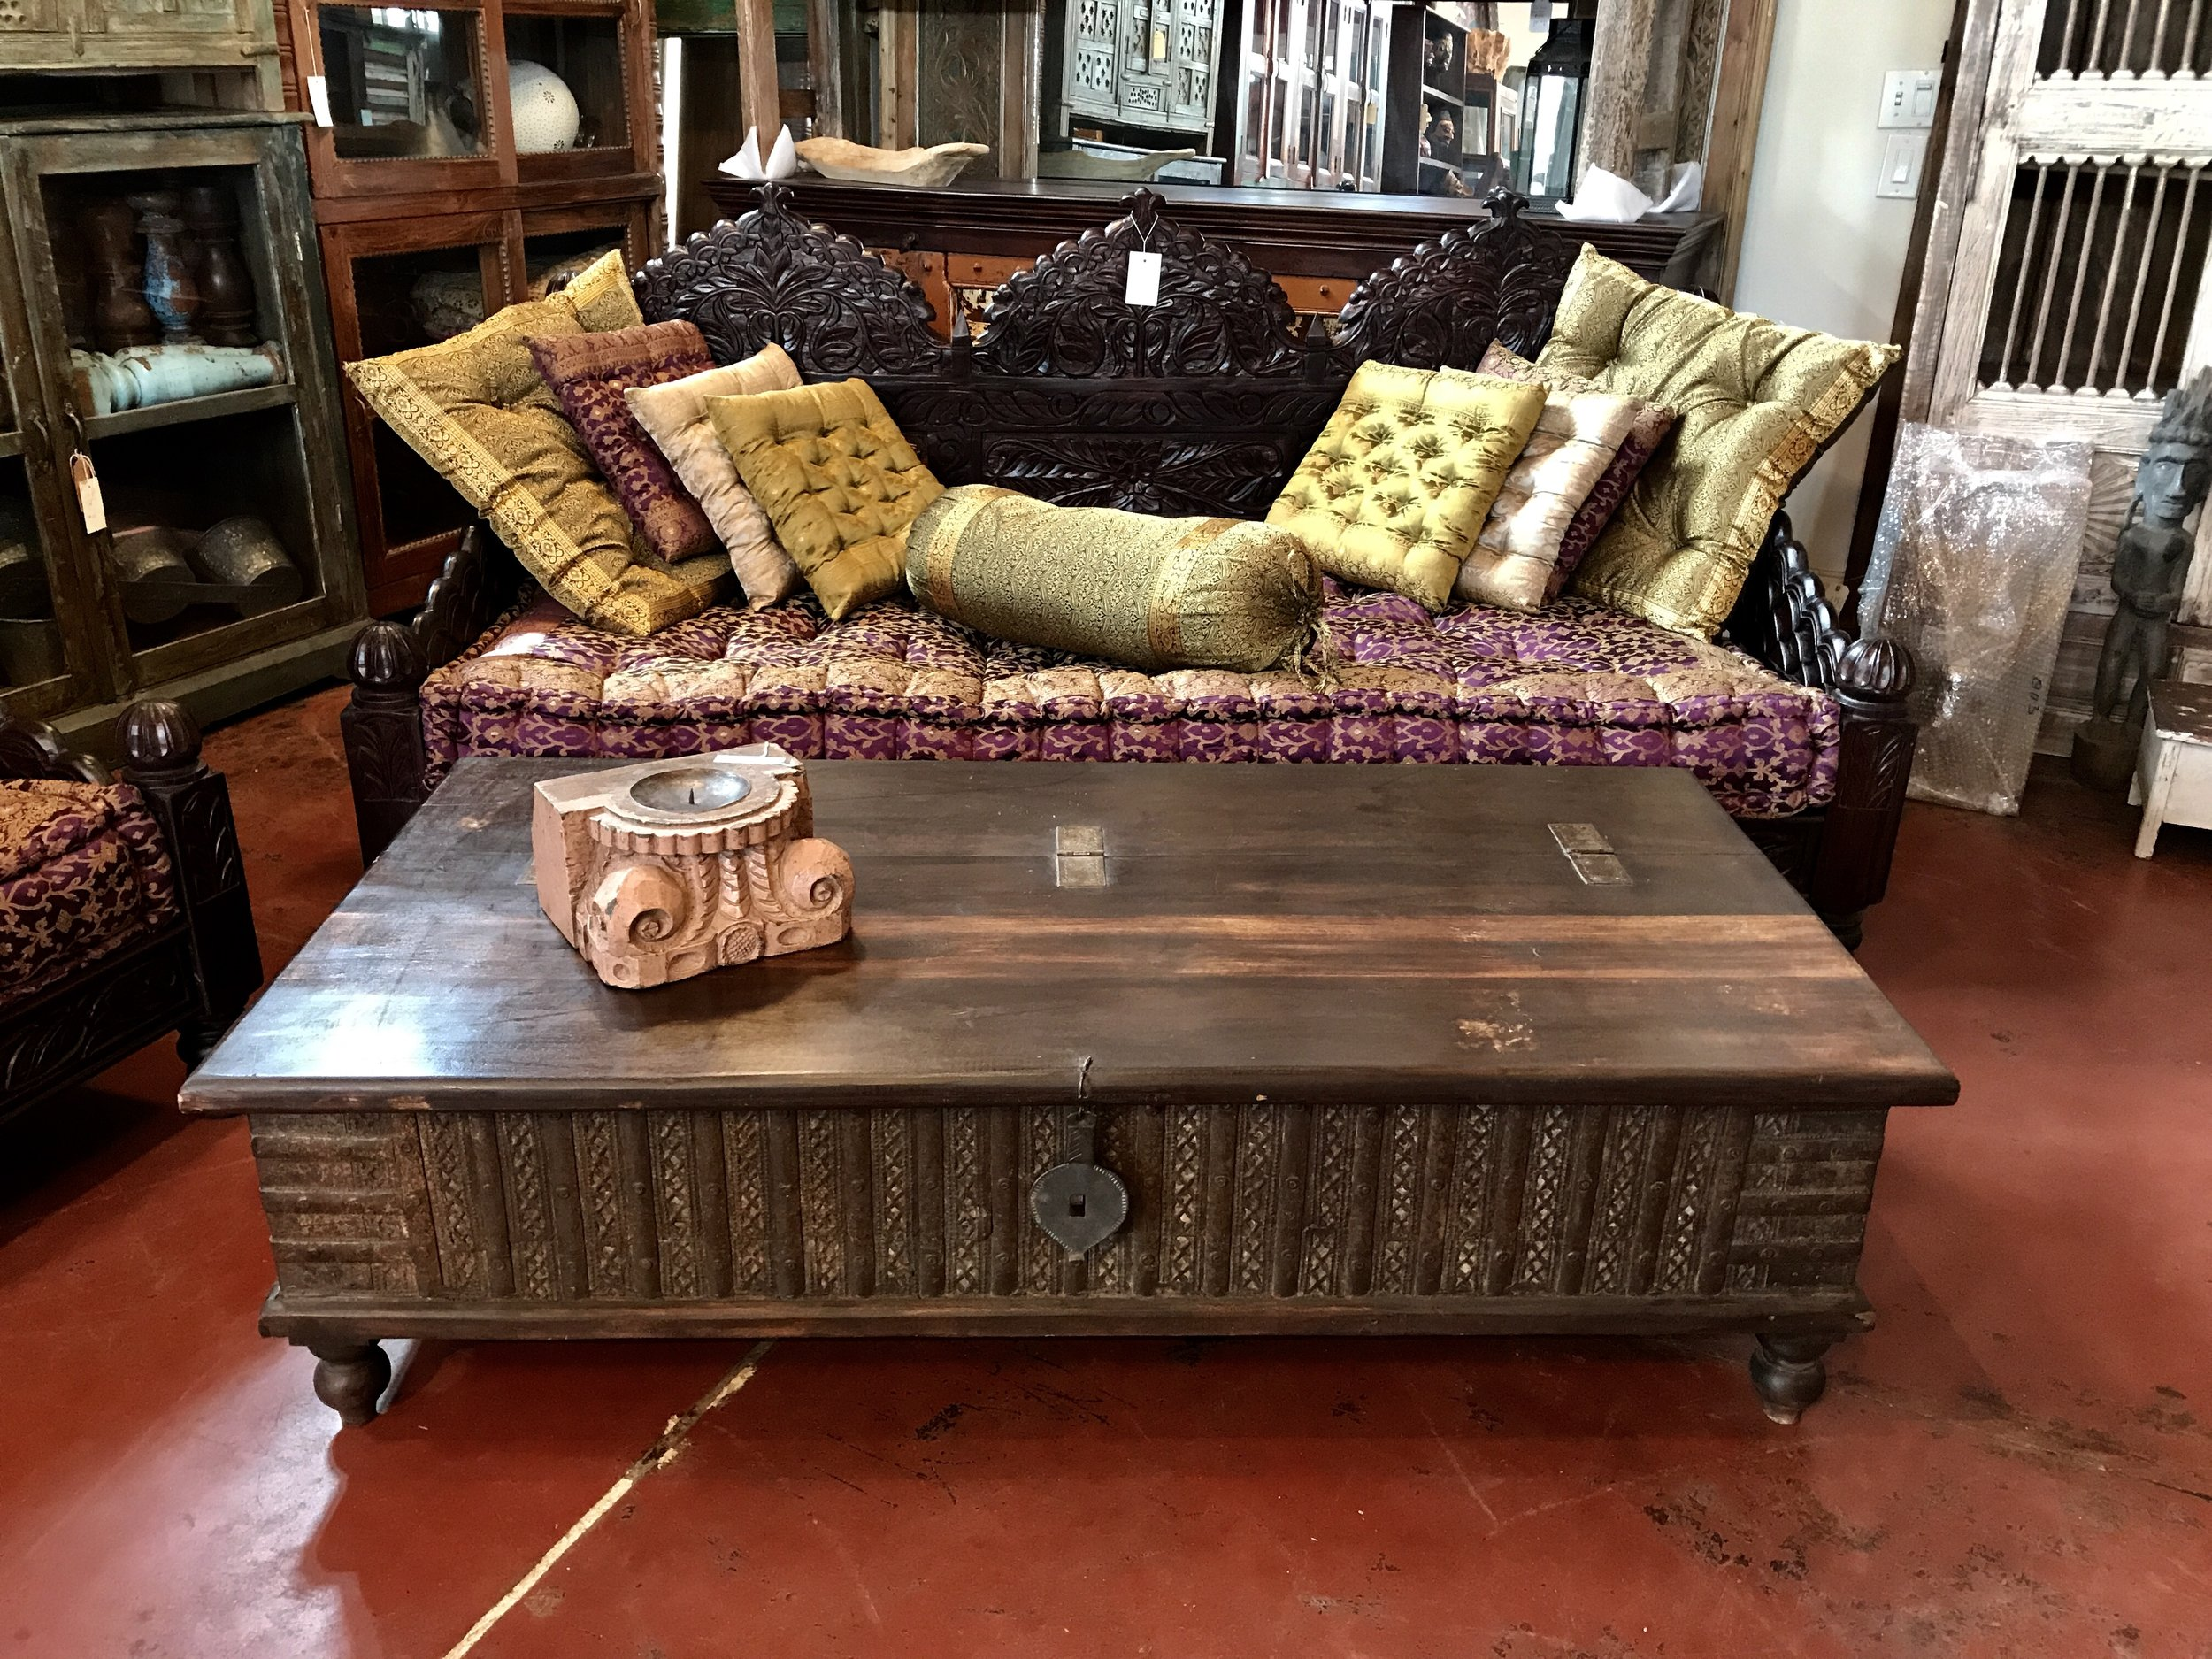 "Indian Blanket Box Coffee Table   SOLD - MORE ON THE WAY  61""w x 30""d x 17""h  $895.00  #CH-3-B"